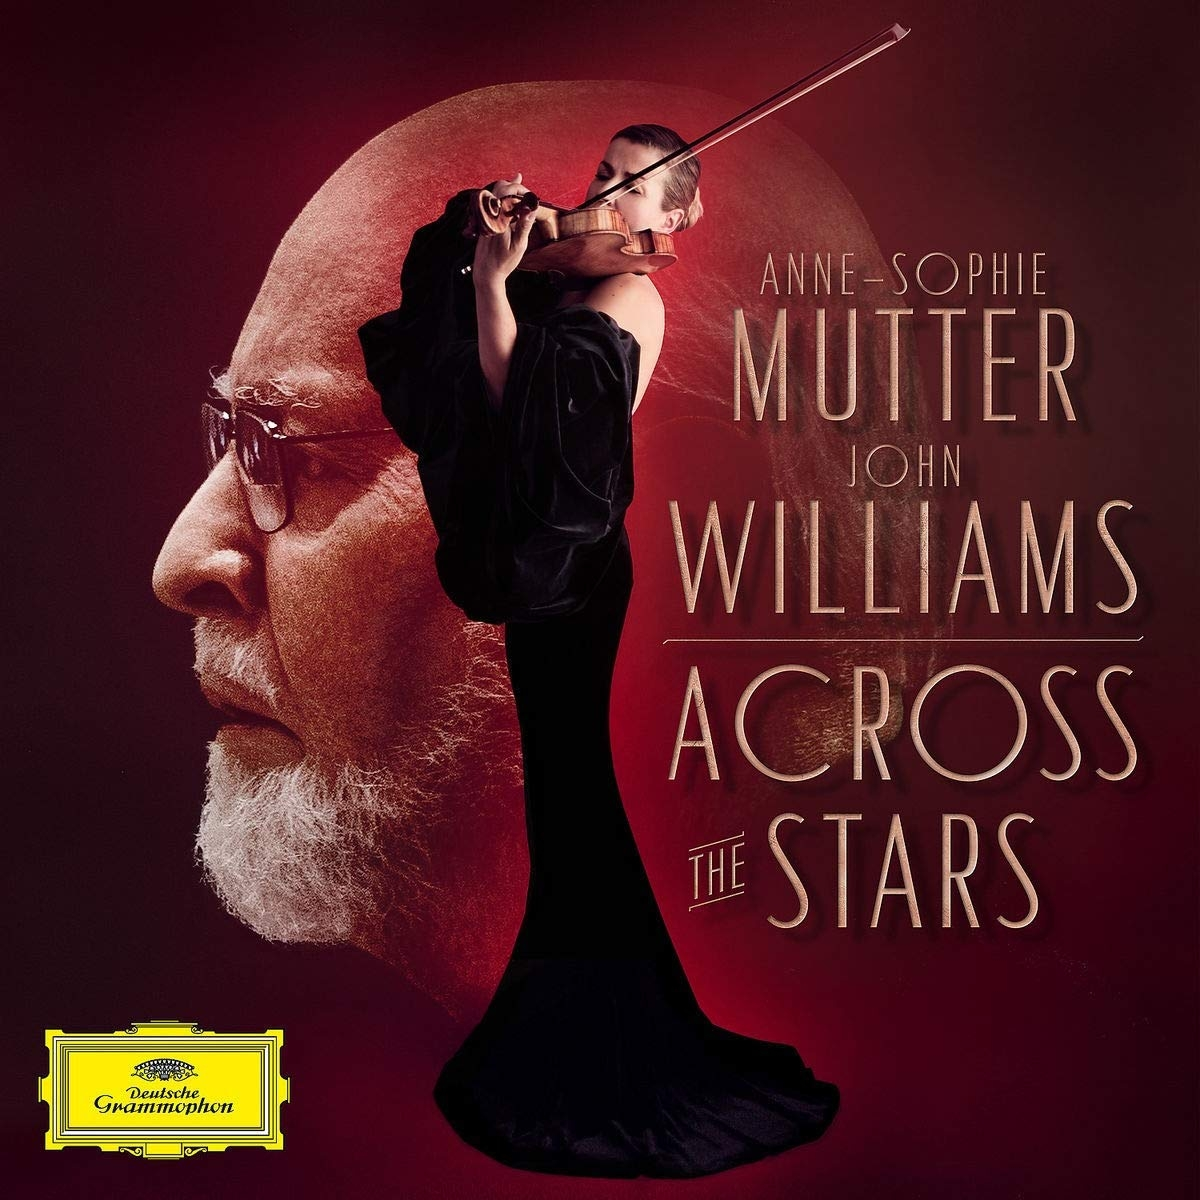 ost 9 19 mutter williams